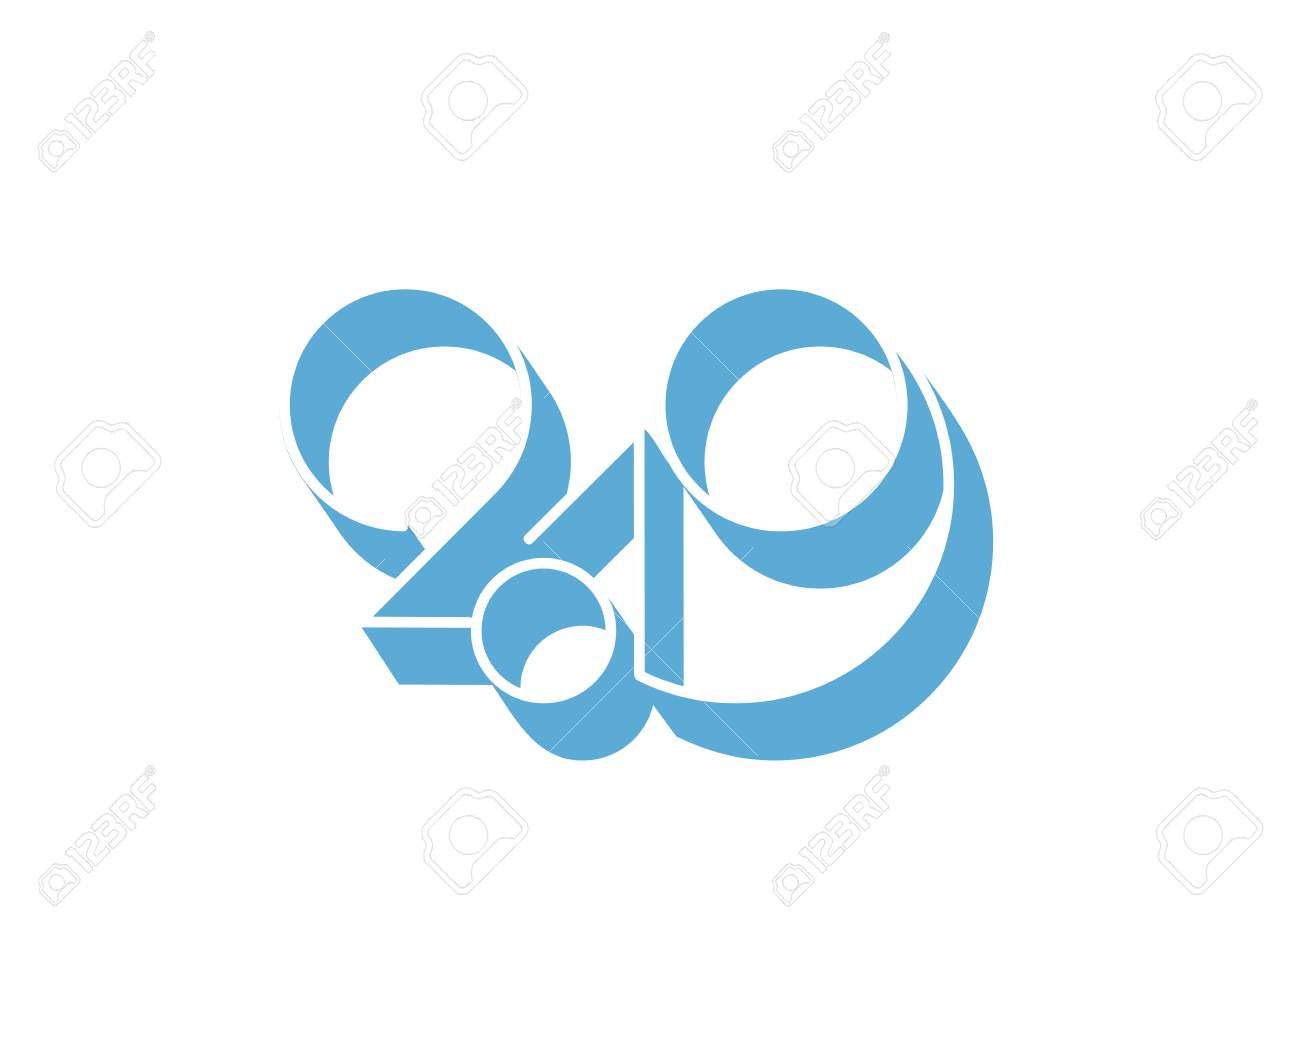 2019 logo new year vector on white background stock vector 110313580